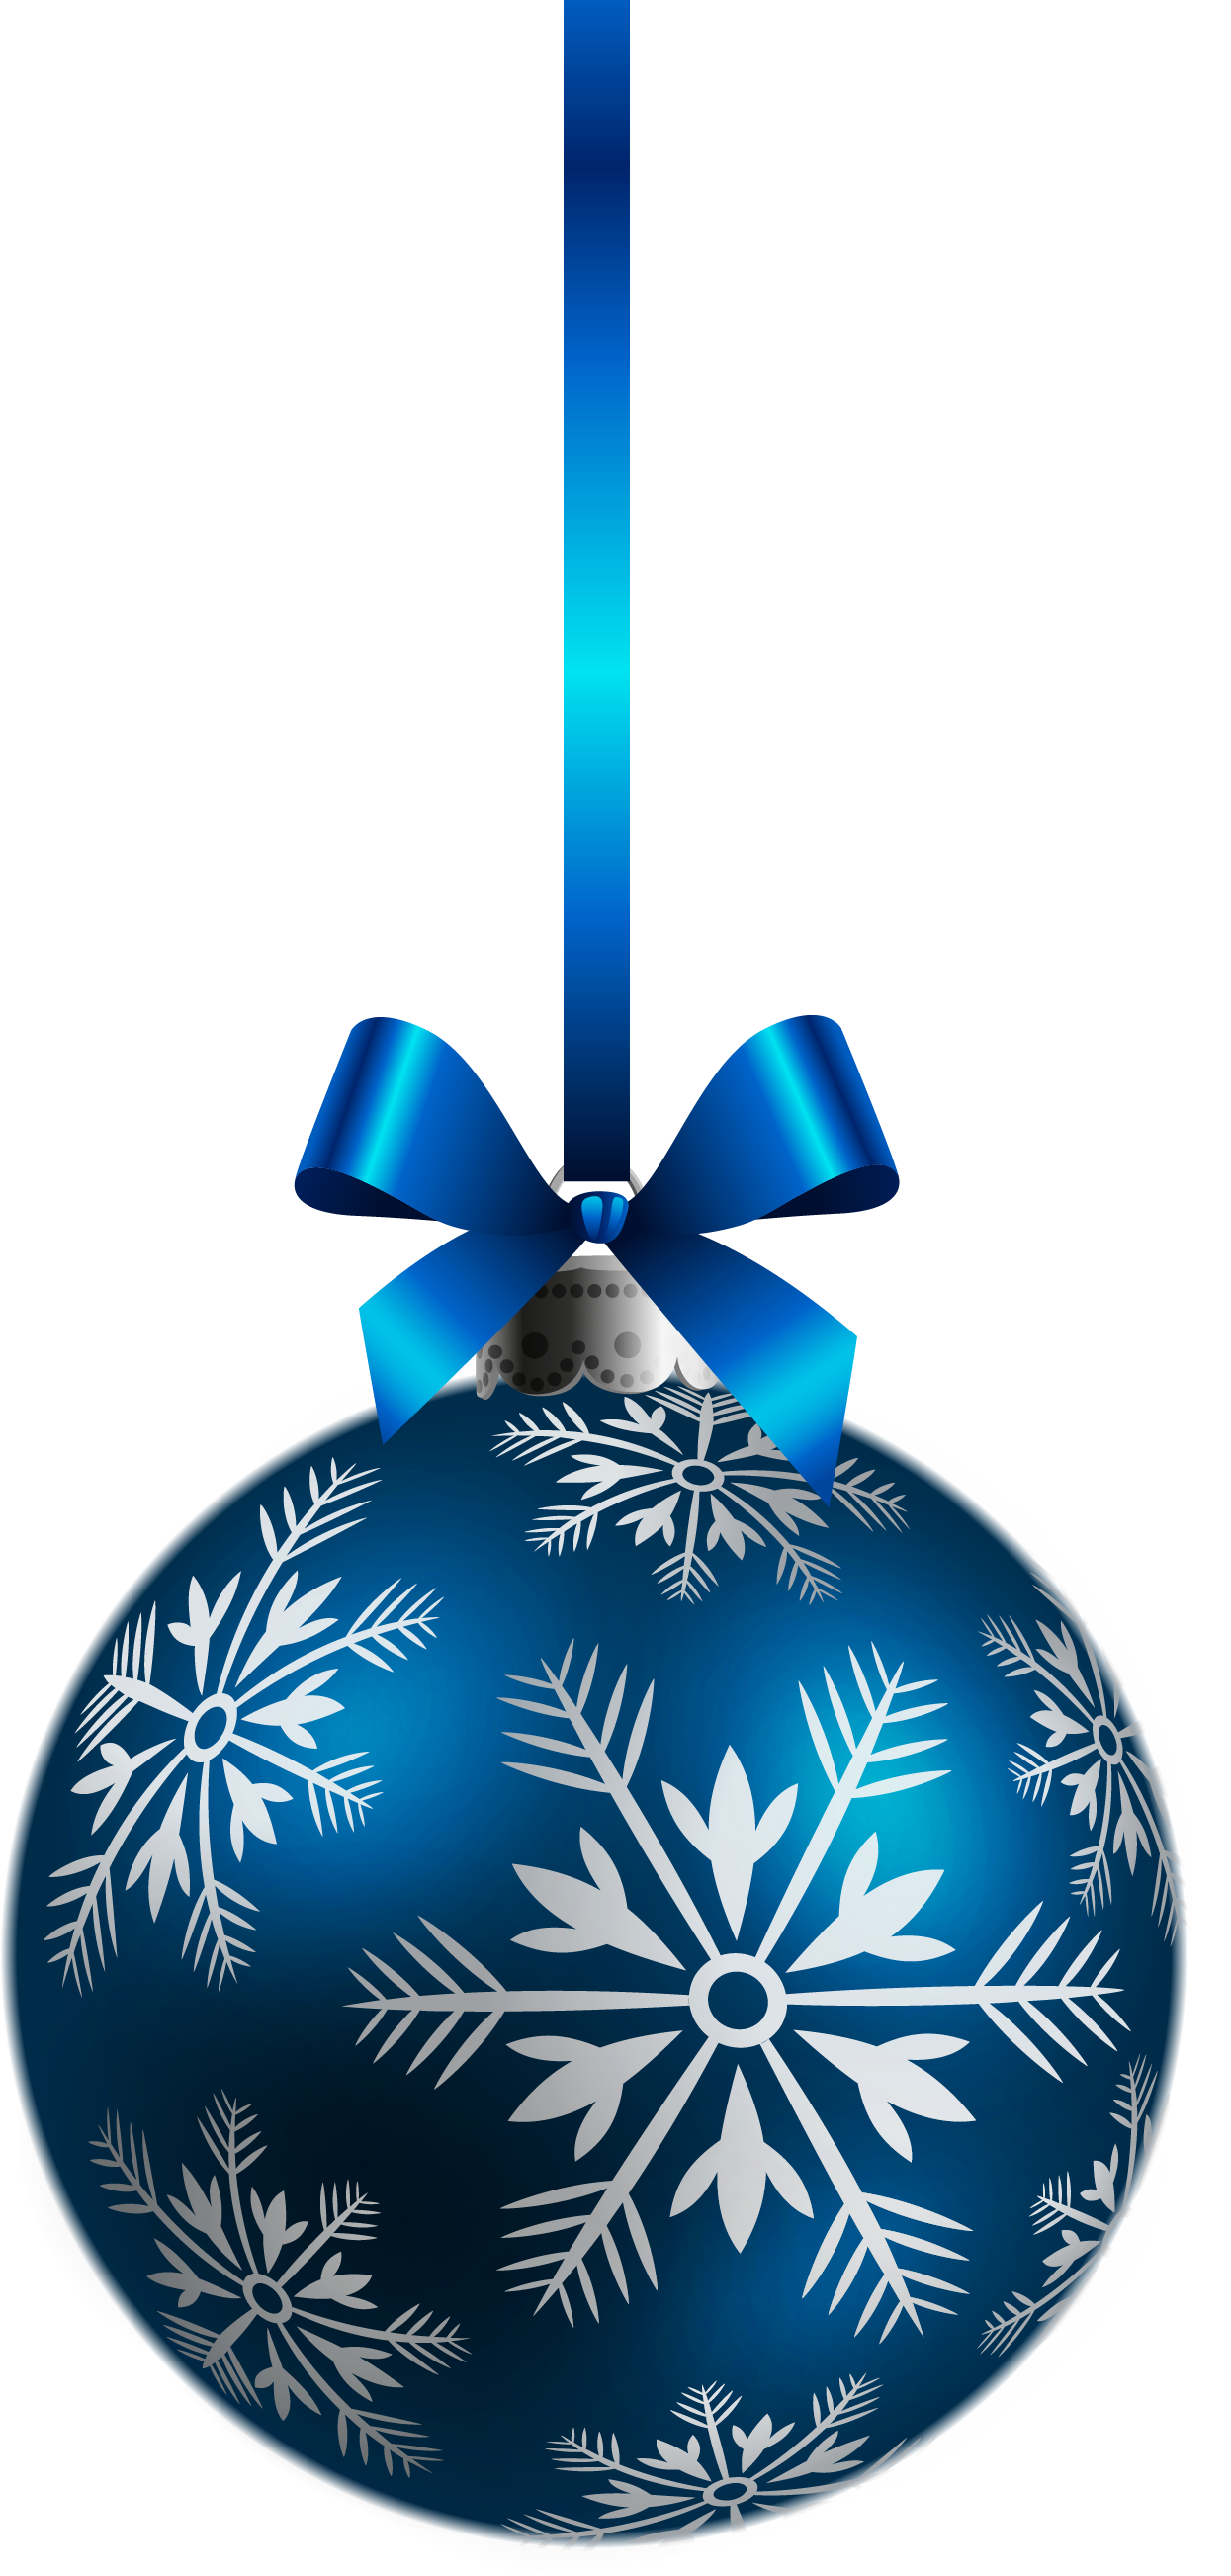 Blue holiday ornament with white snowflakes